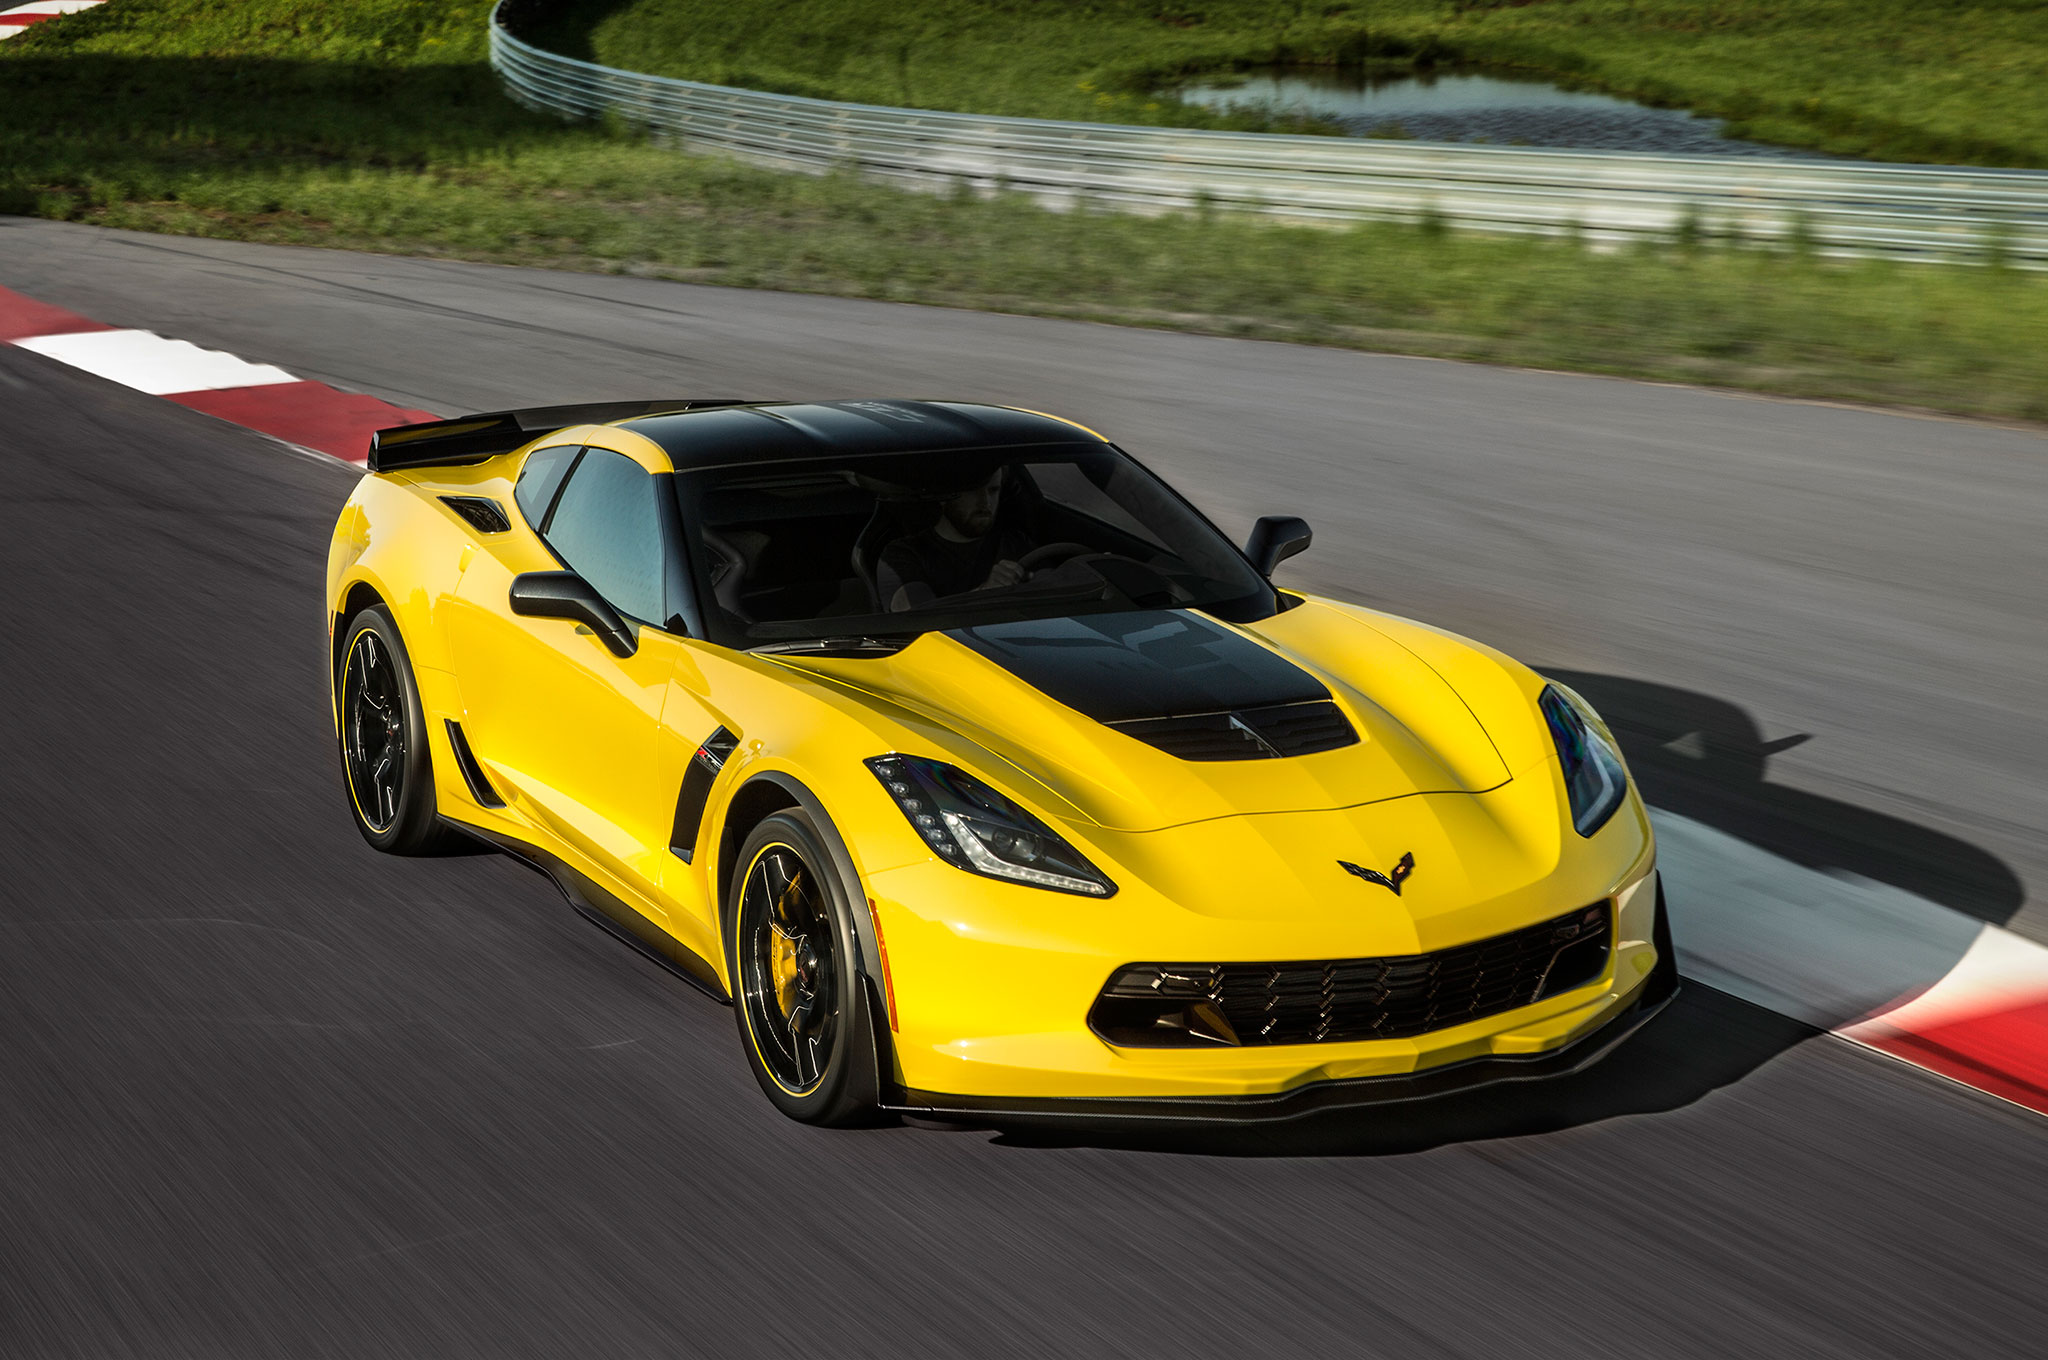 2016 Chevrolet Corvette Z06 C7R Edition Front Three Quarter Motion